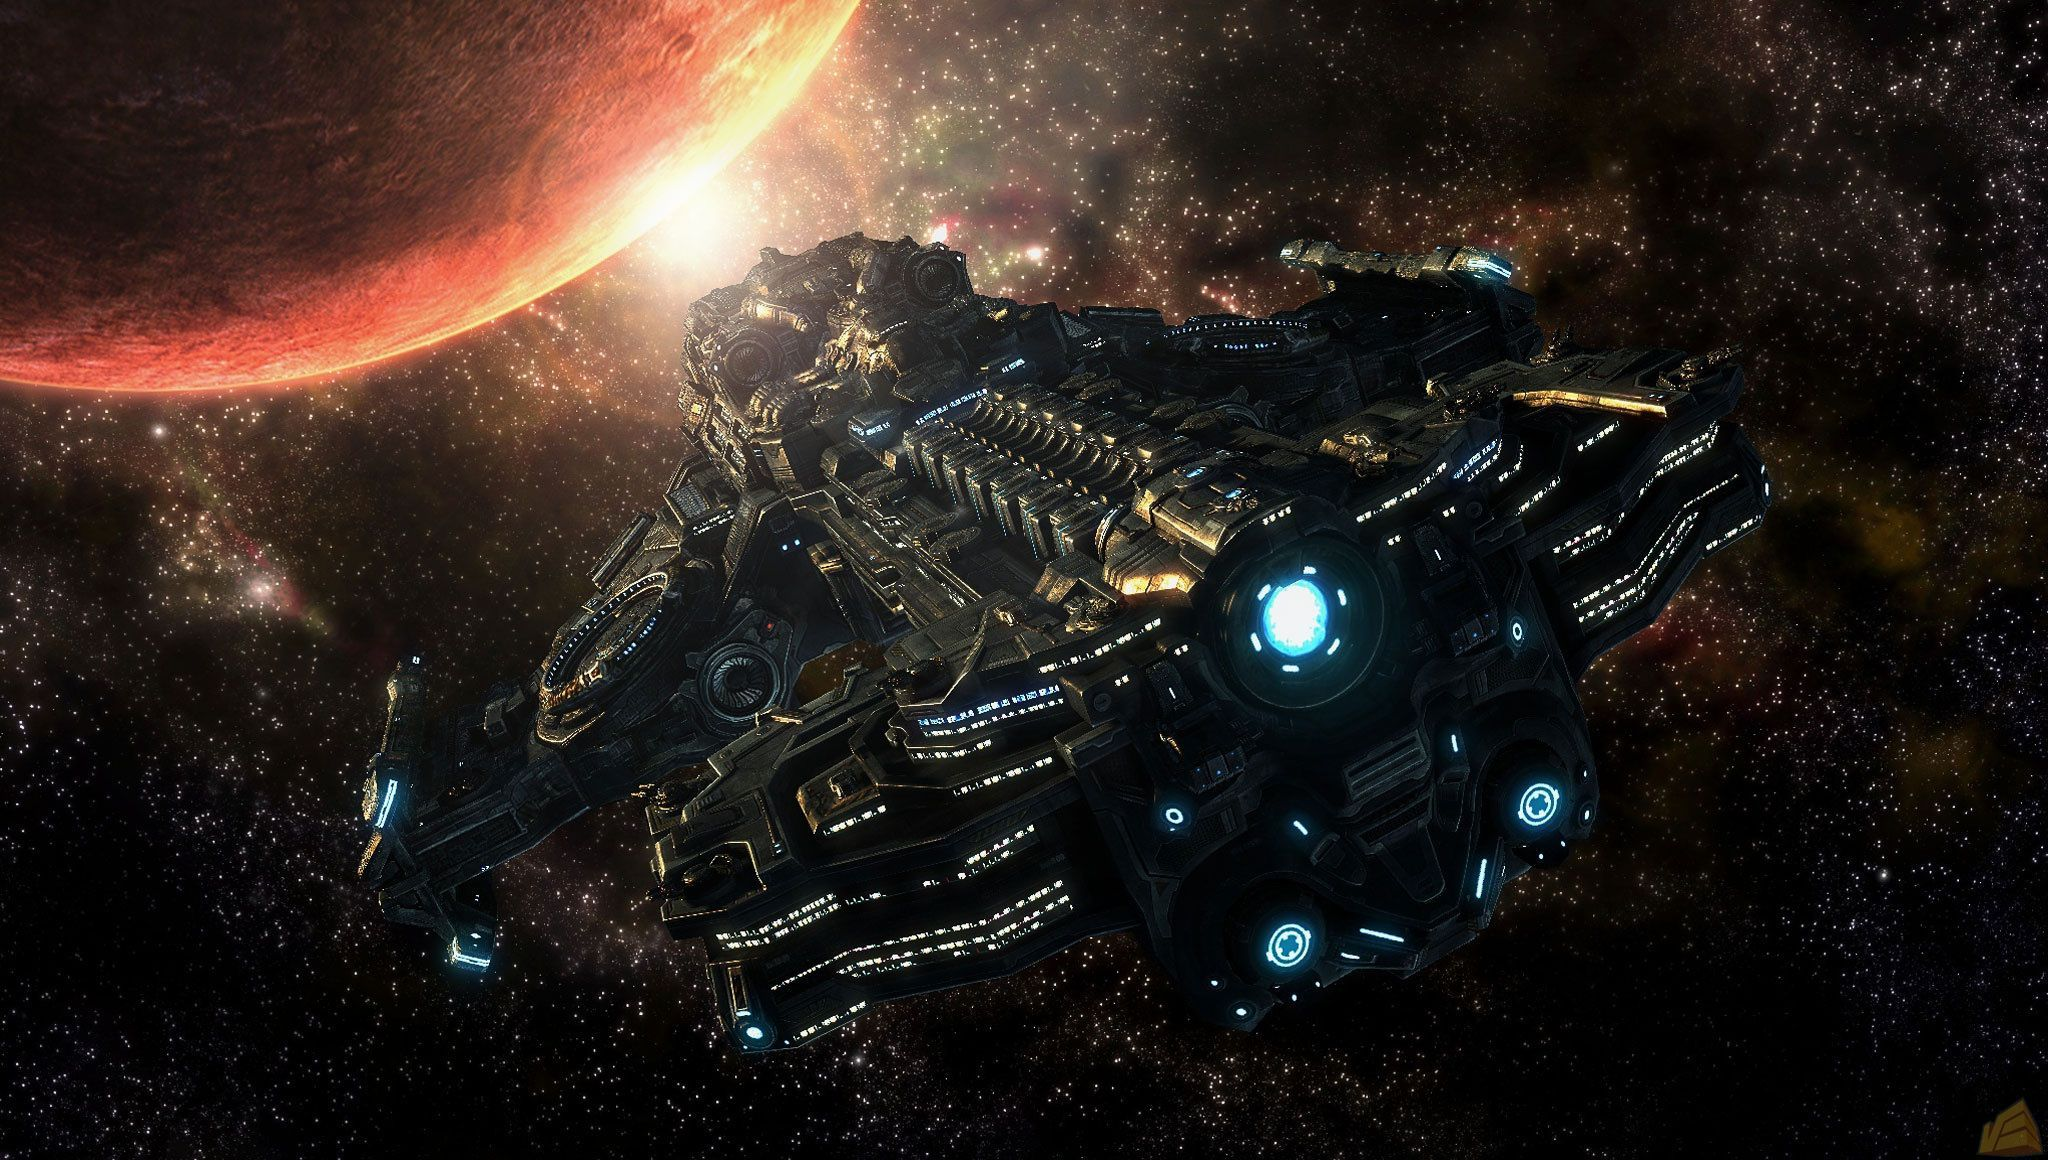 I Dont Like Waiting So I Am Doing Scifi Starship Saturday Sunday Today Sci Friday No Well I Tried Here Just Take This Post Starcraft Galaxy Wallpaper Hd Wallpaper